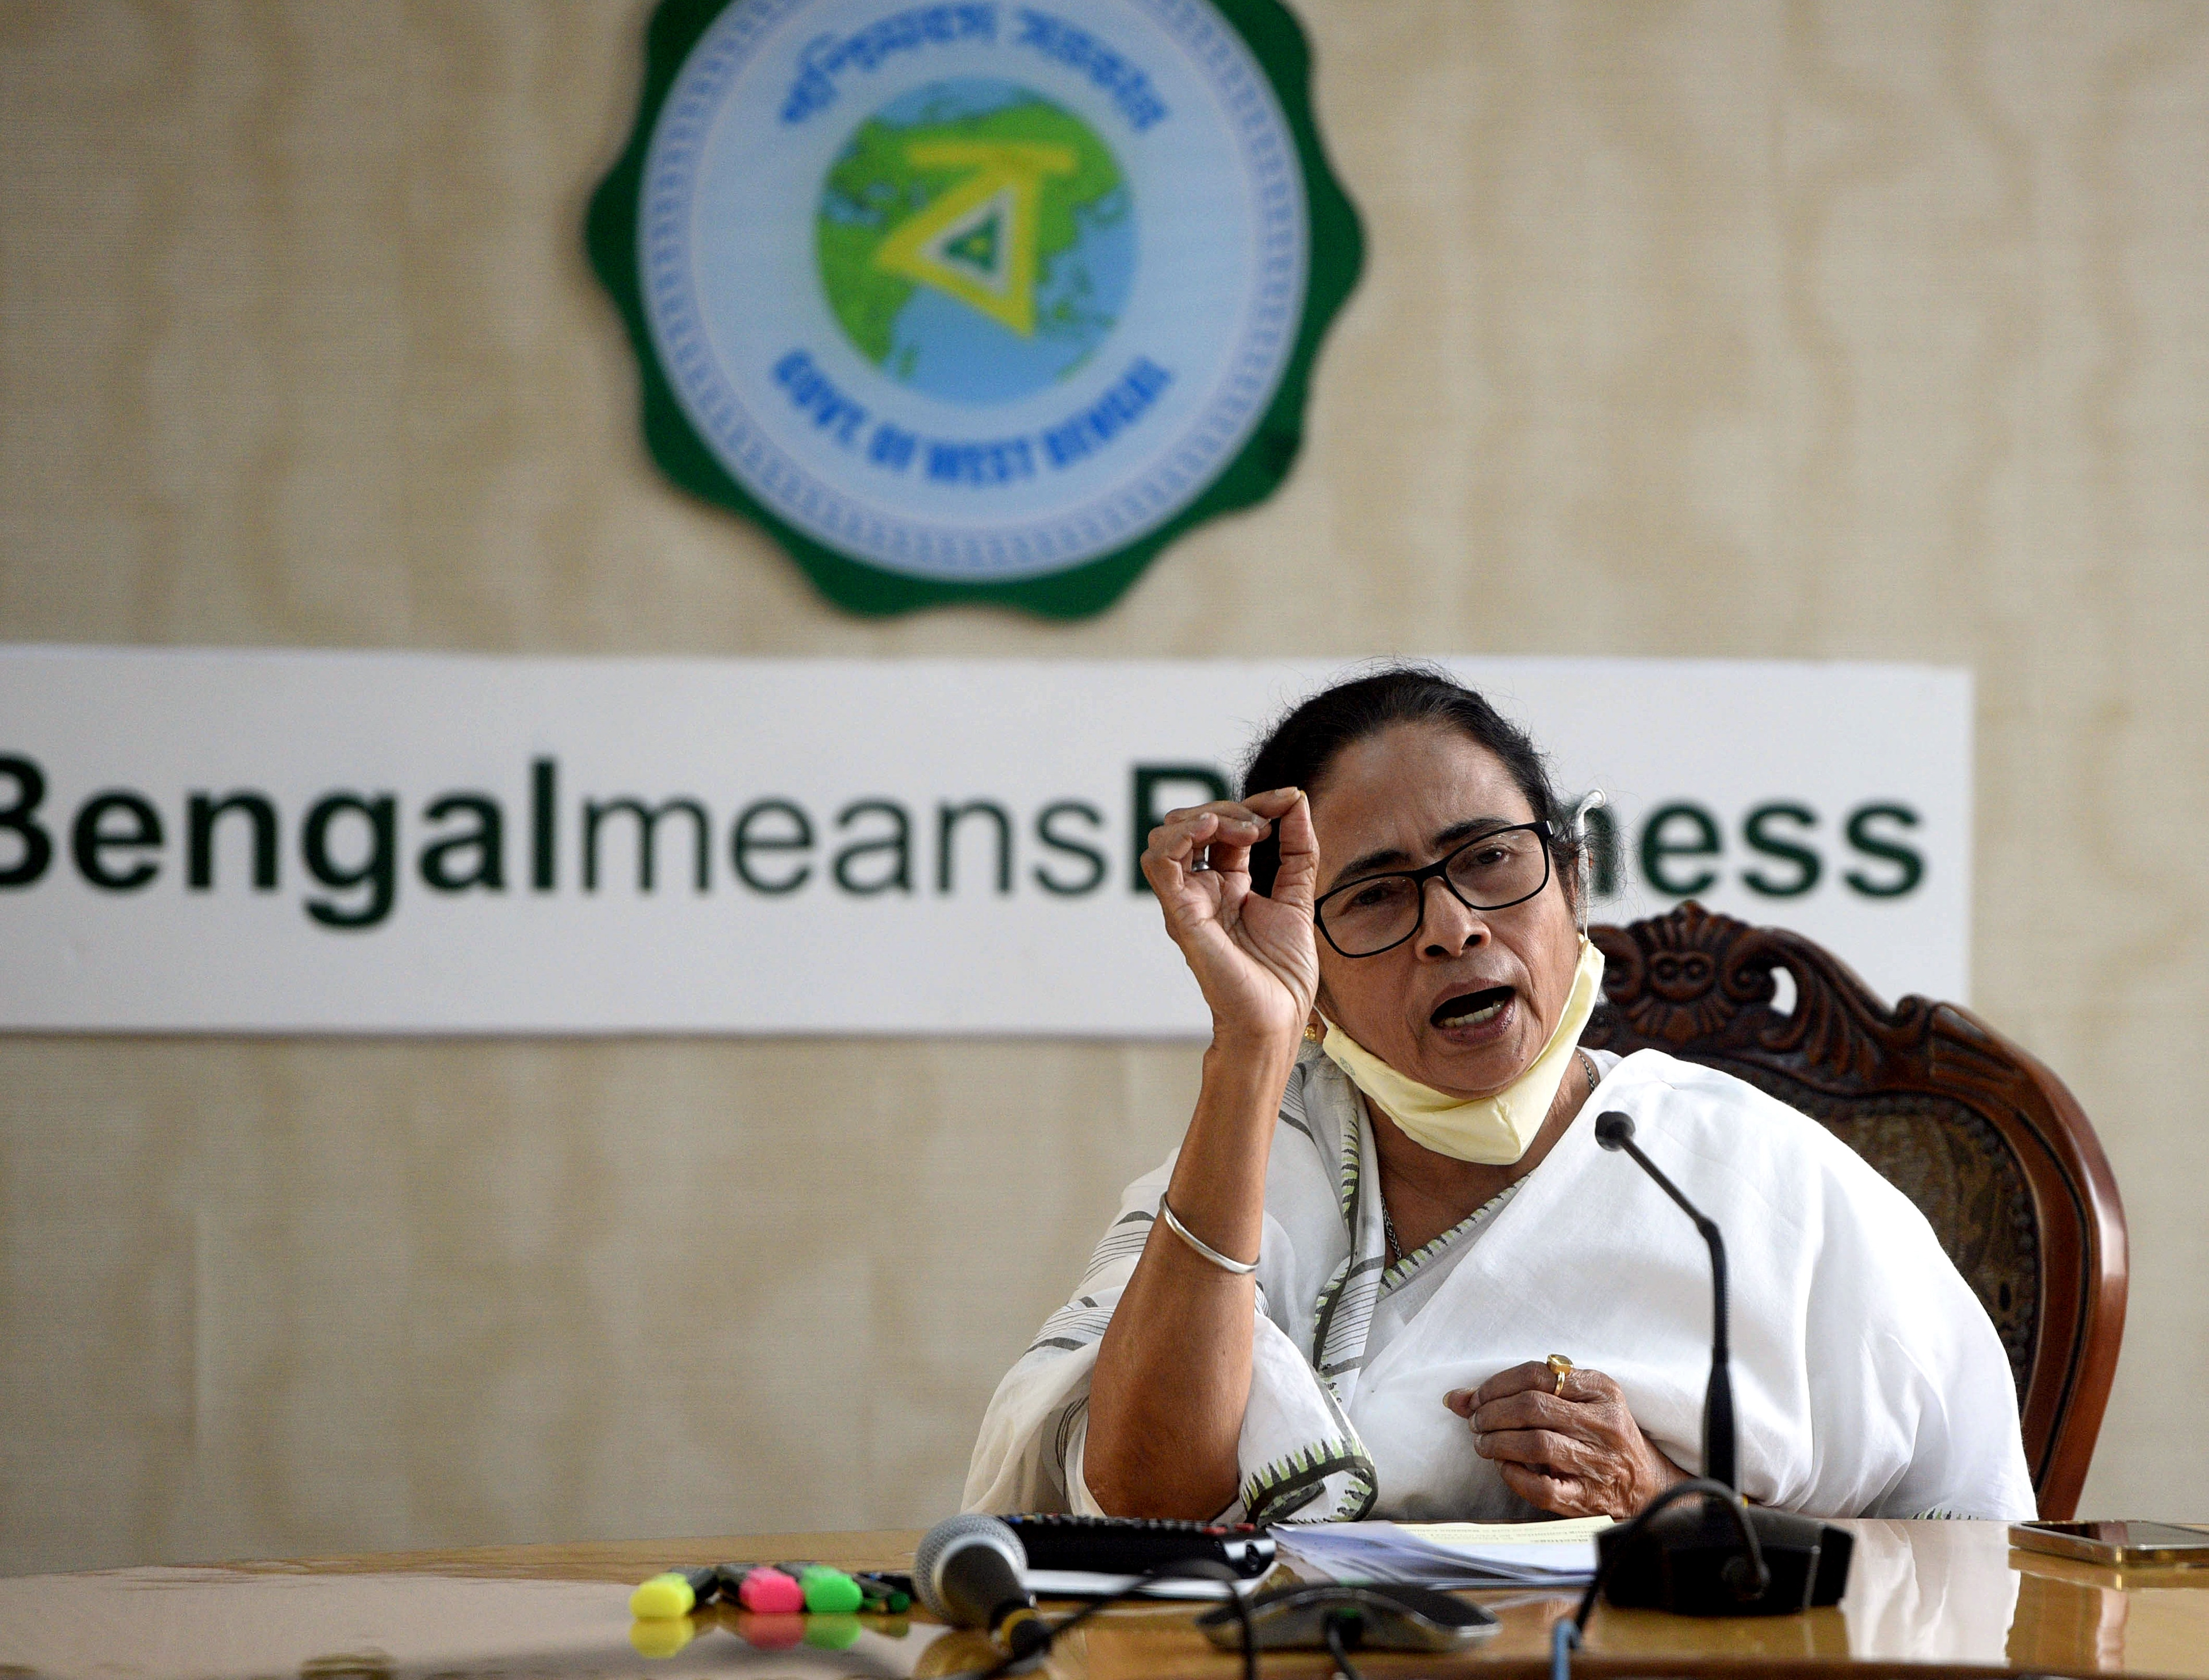 West Bengal Chief Minister Mamata Banerjee addresses media at her office in Howrah